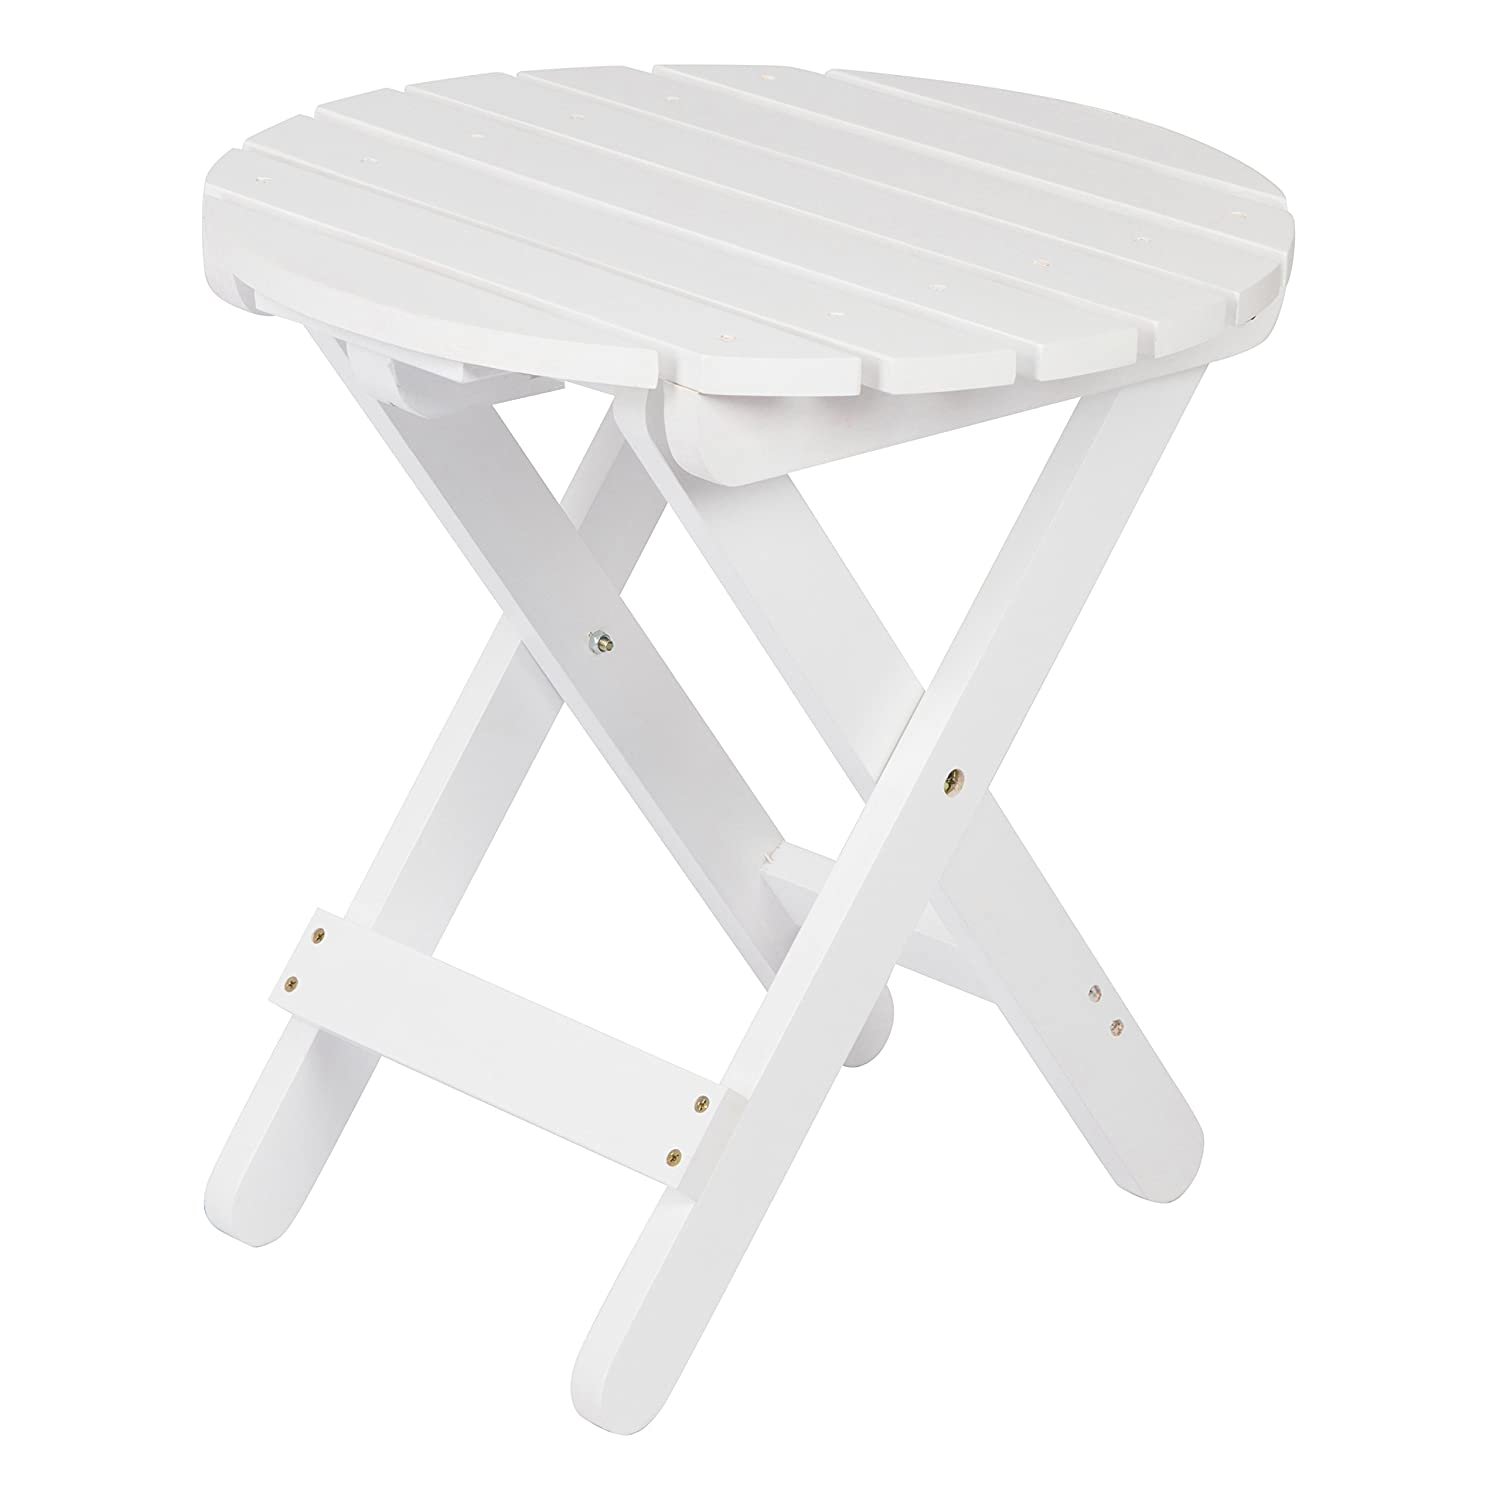 Shine Company 4108WT Adirondack Round Folding Table, White